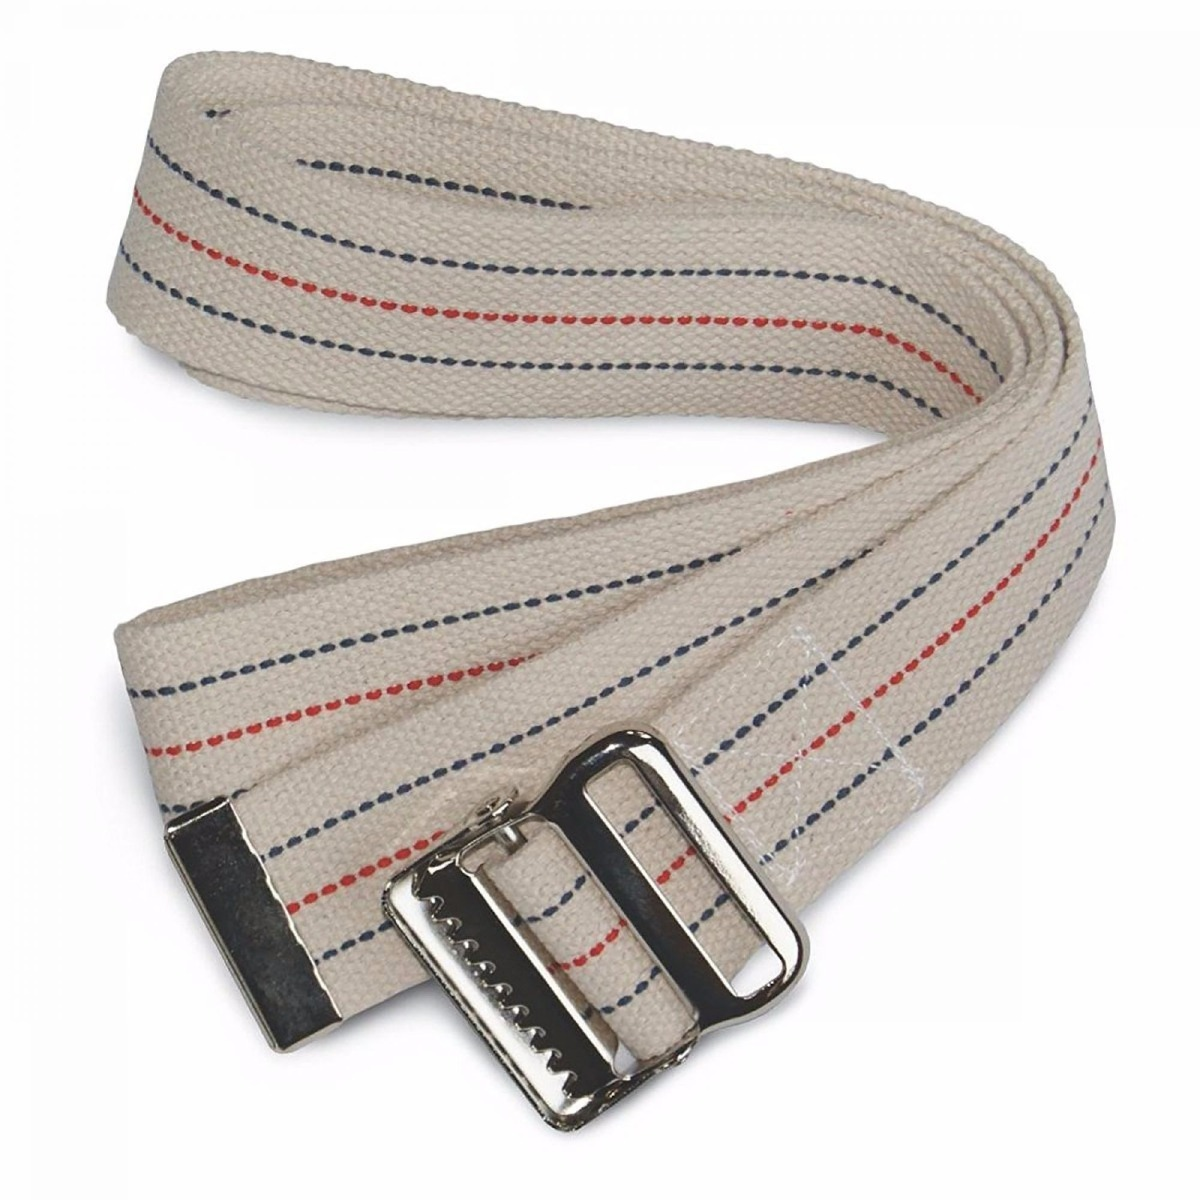 "Sammons Preston Gait Belts, 54"", Neutral Stripe, Each"